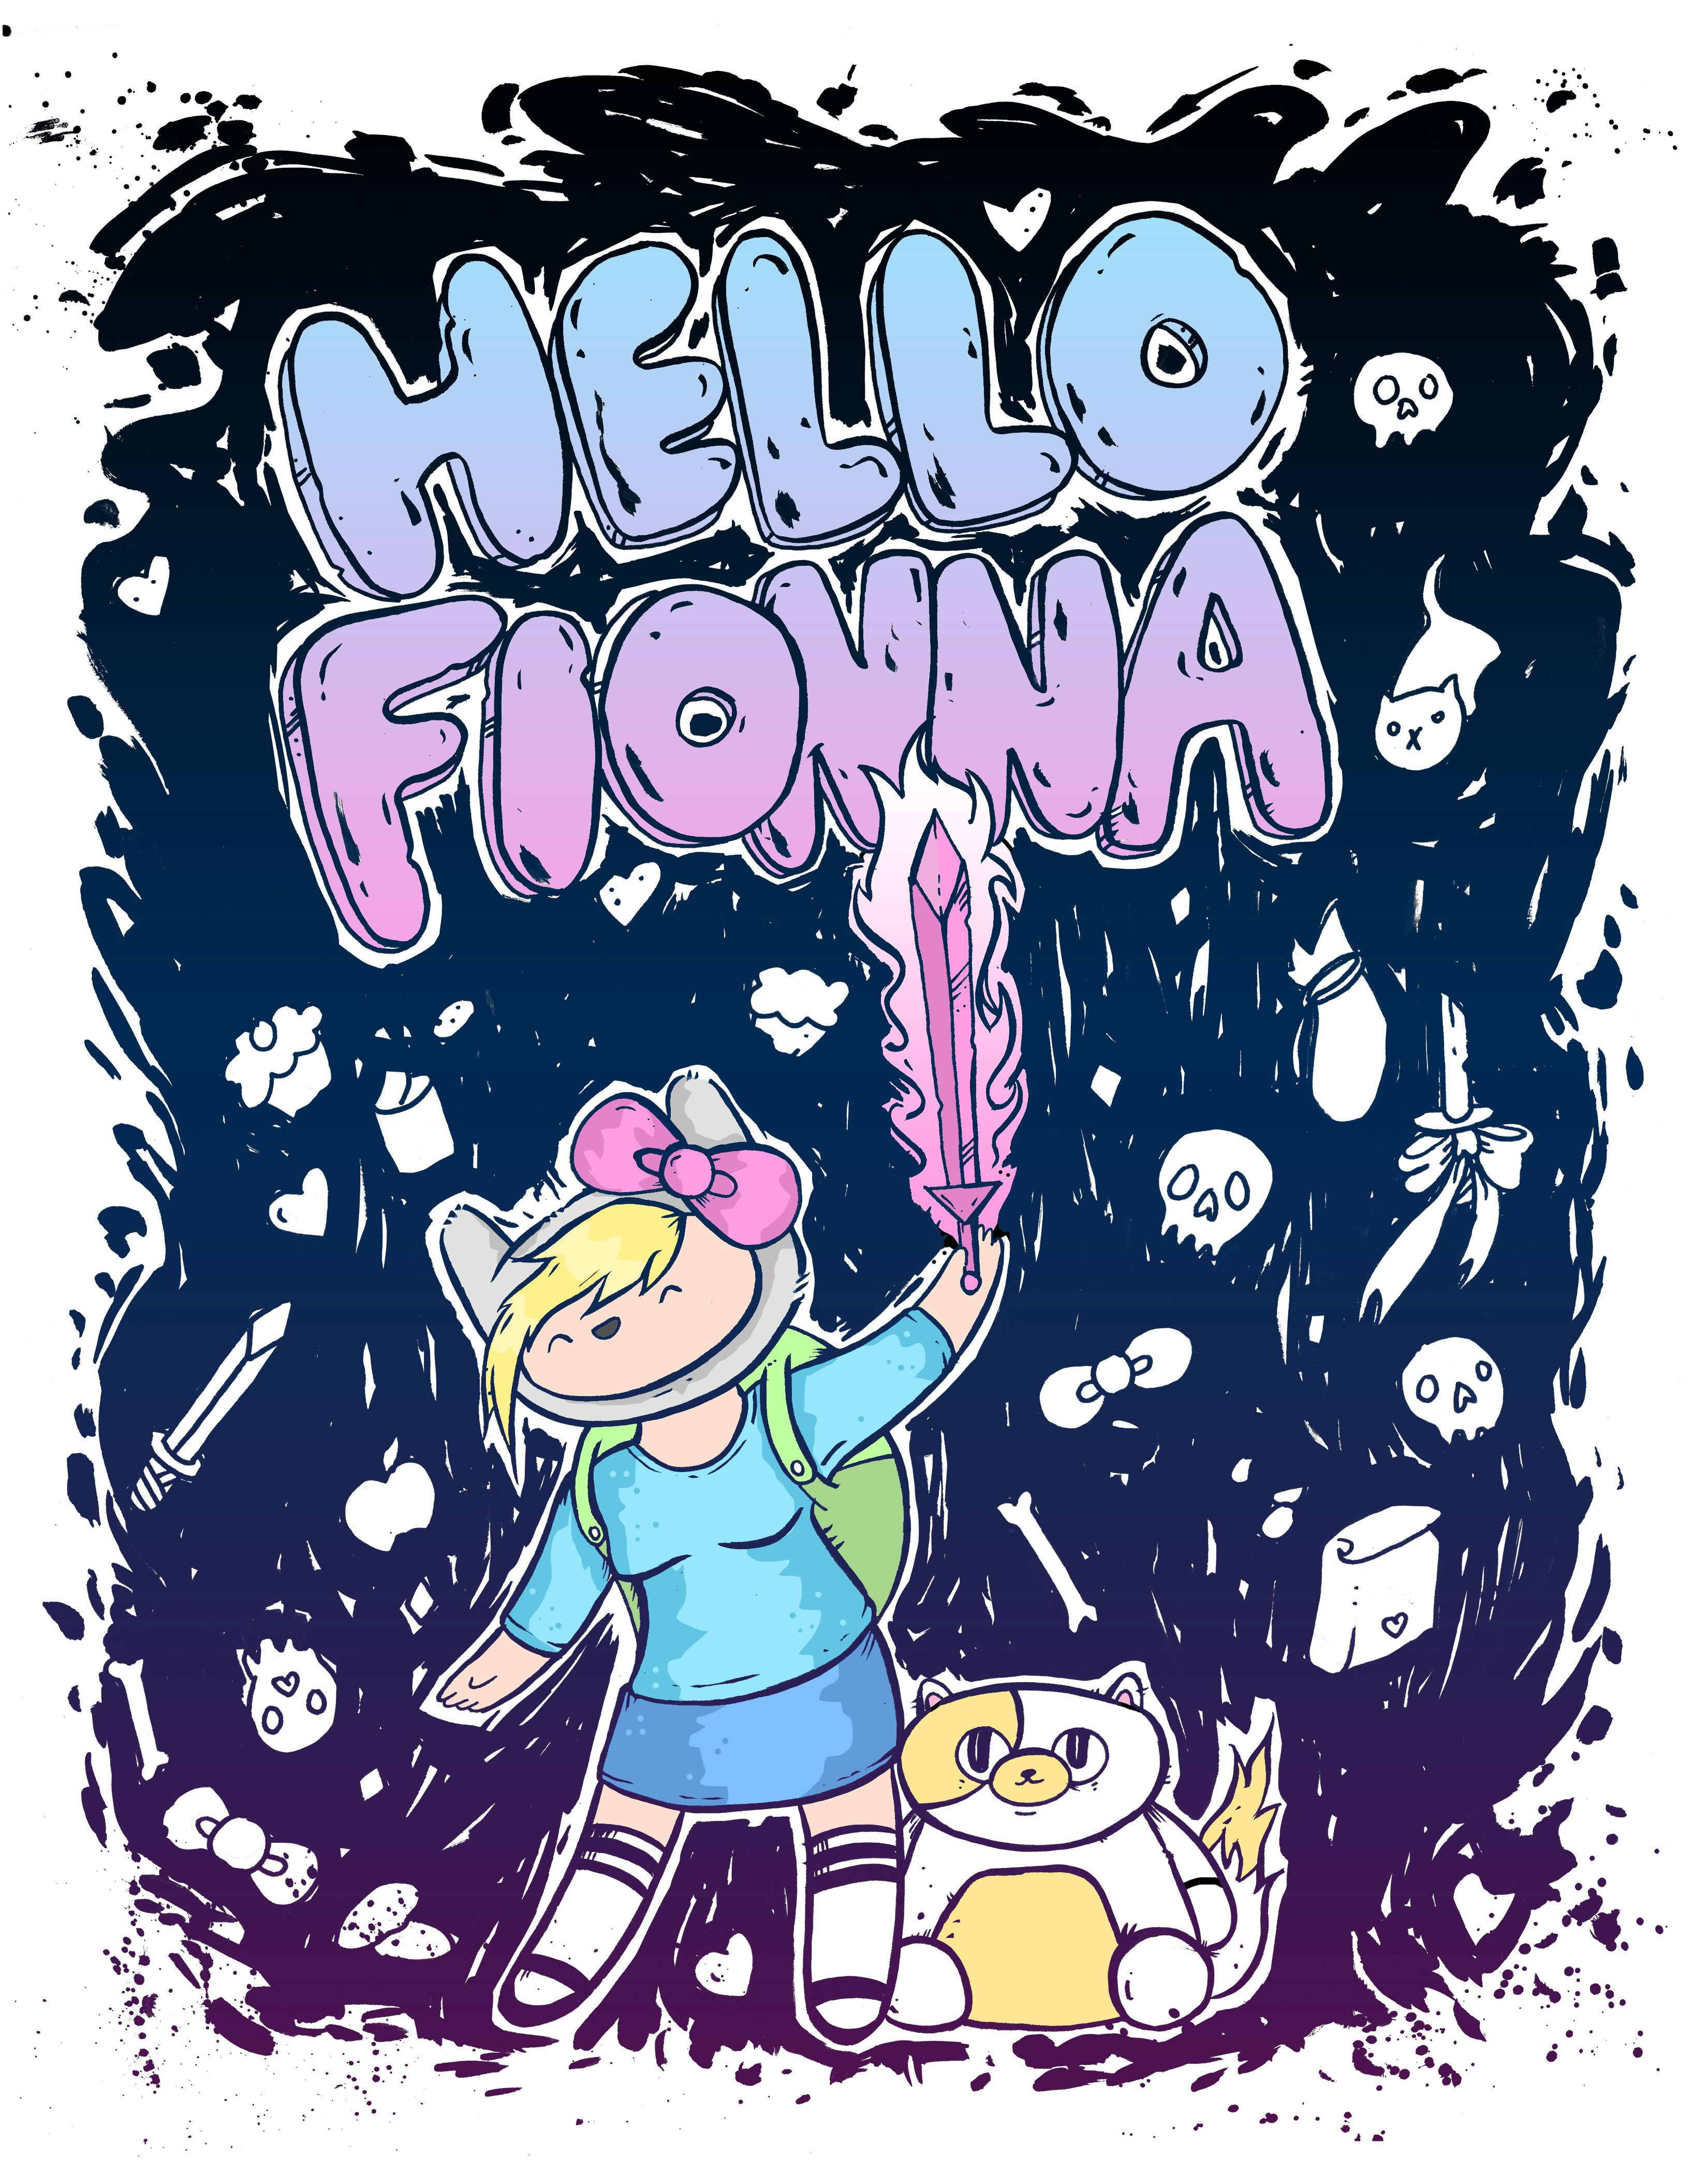 https://www.etsy.com/listing/188831893/hello-fionna-adventure-time-inspired?ref=shop_home_active_1&ga_search_query=hello%2Bfionna